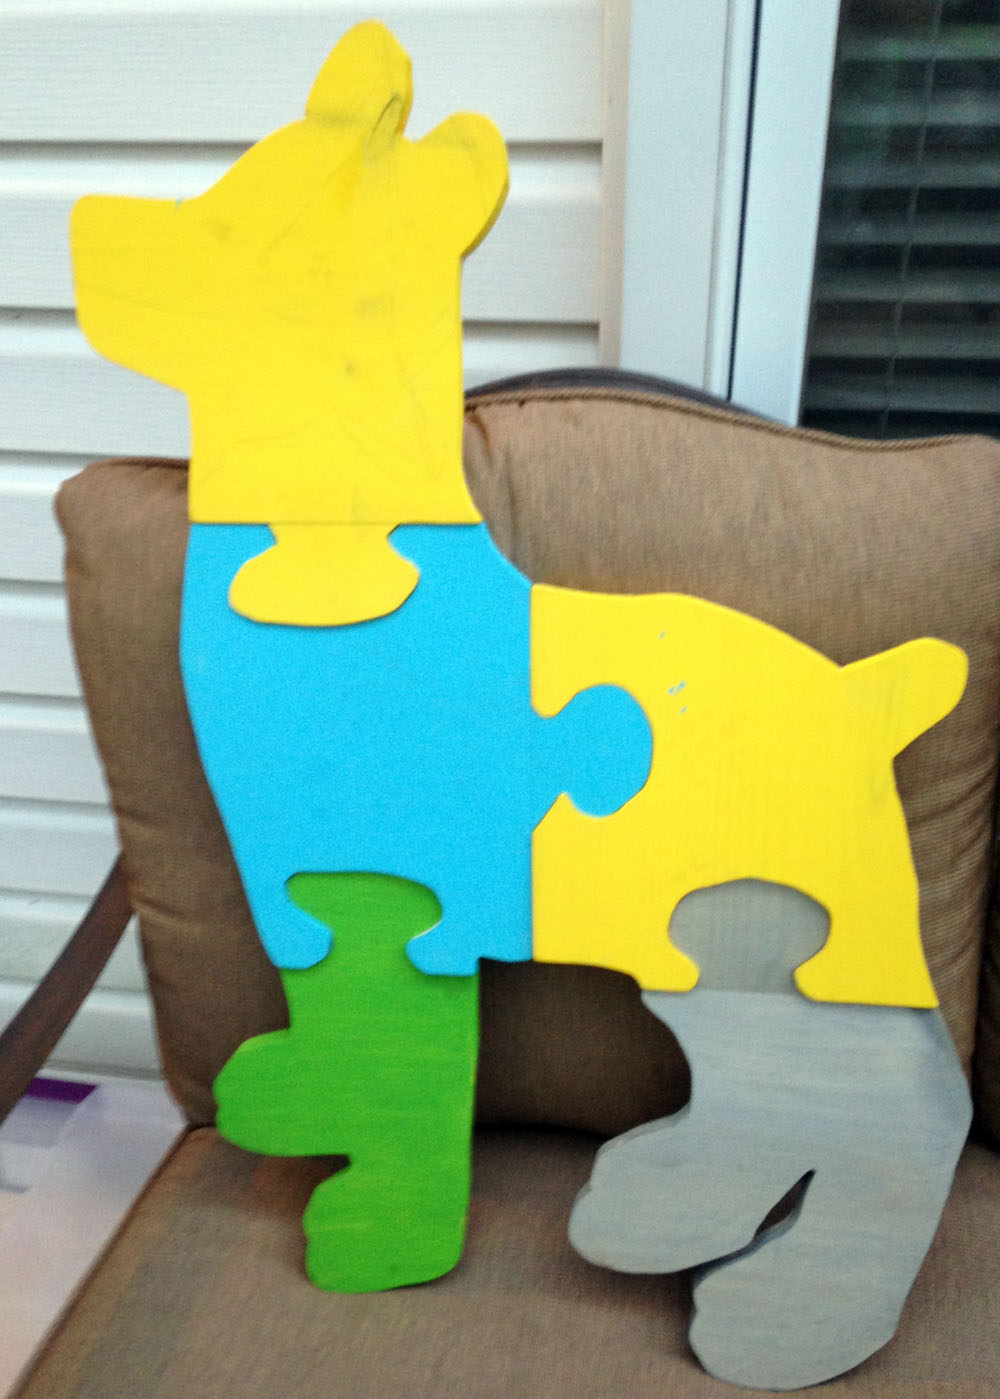 Awesome yard game activity - giant DIY jigsaw puzzle